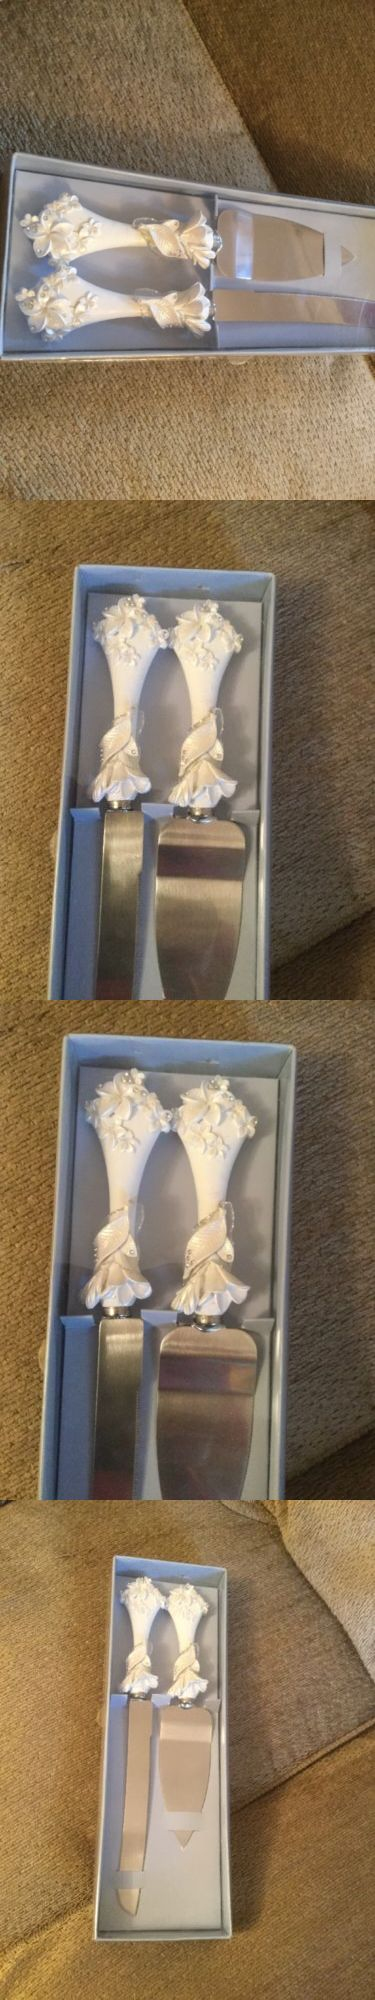 Wedding Cake Servers and Knives 102466: Bride Groom White Flowers Wedding Cake Cutter Knife Server New Annivesary -> BUY IT NOW ONLY: $32 on eBay!